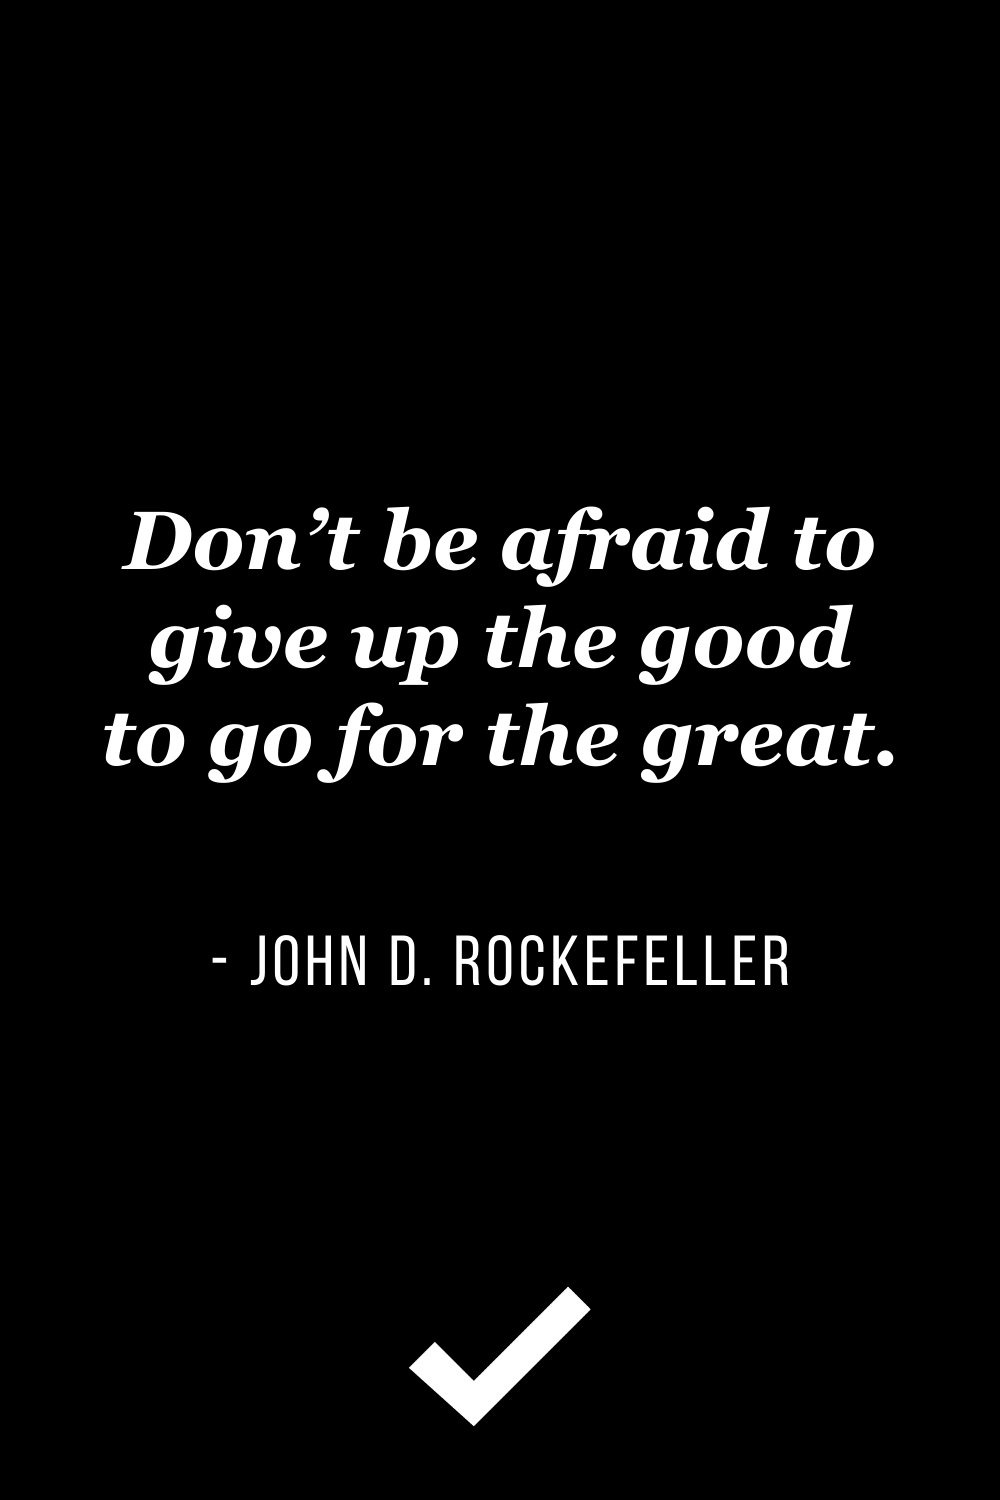 """""""Don't be afraid to give up the good to go for the great."""" – John D. Rockefeller"""